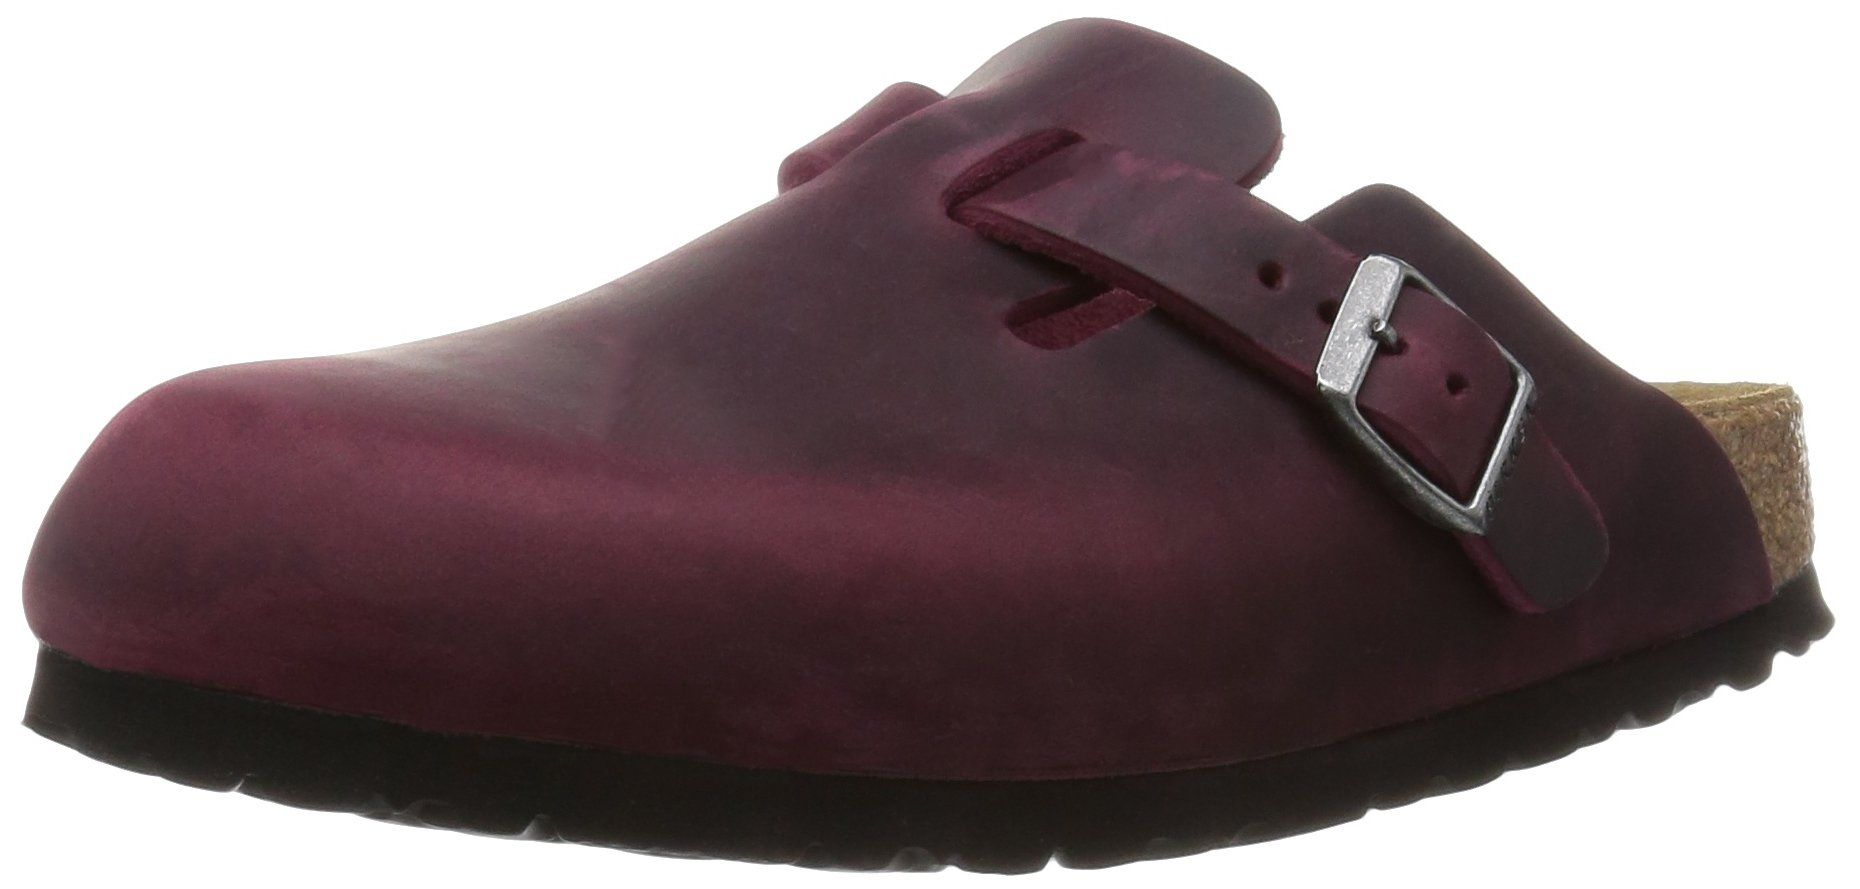 new concept 0a225 06d59 Birkenstock Boston, Women's Clogs & Mules: Amazon.co.uk ...